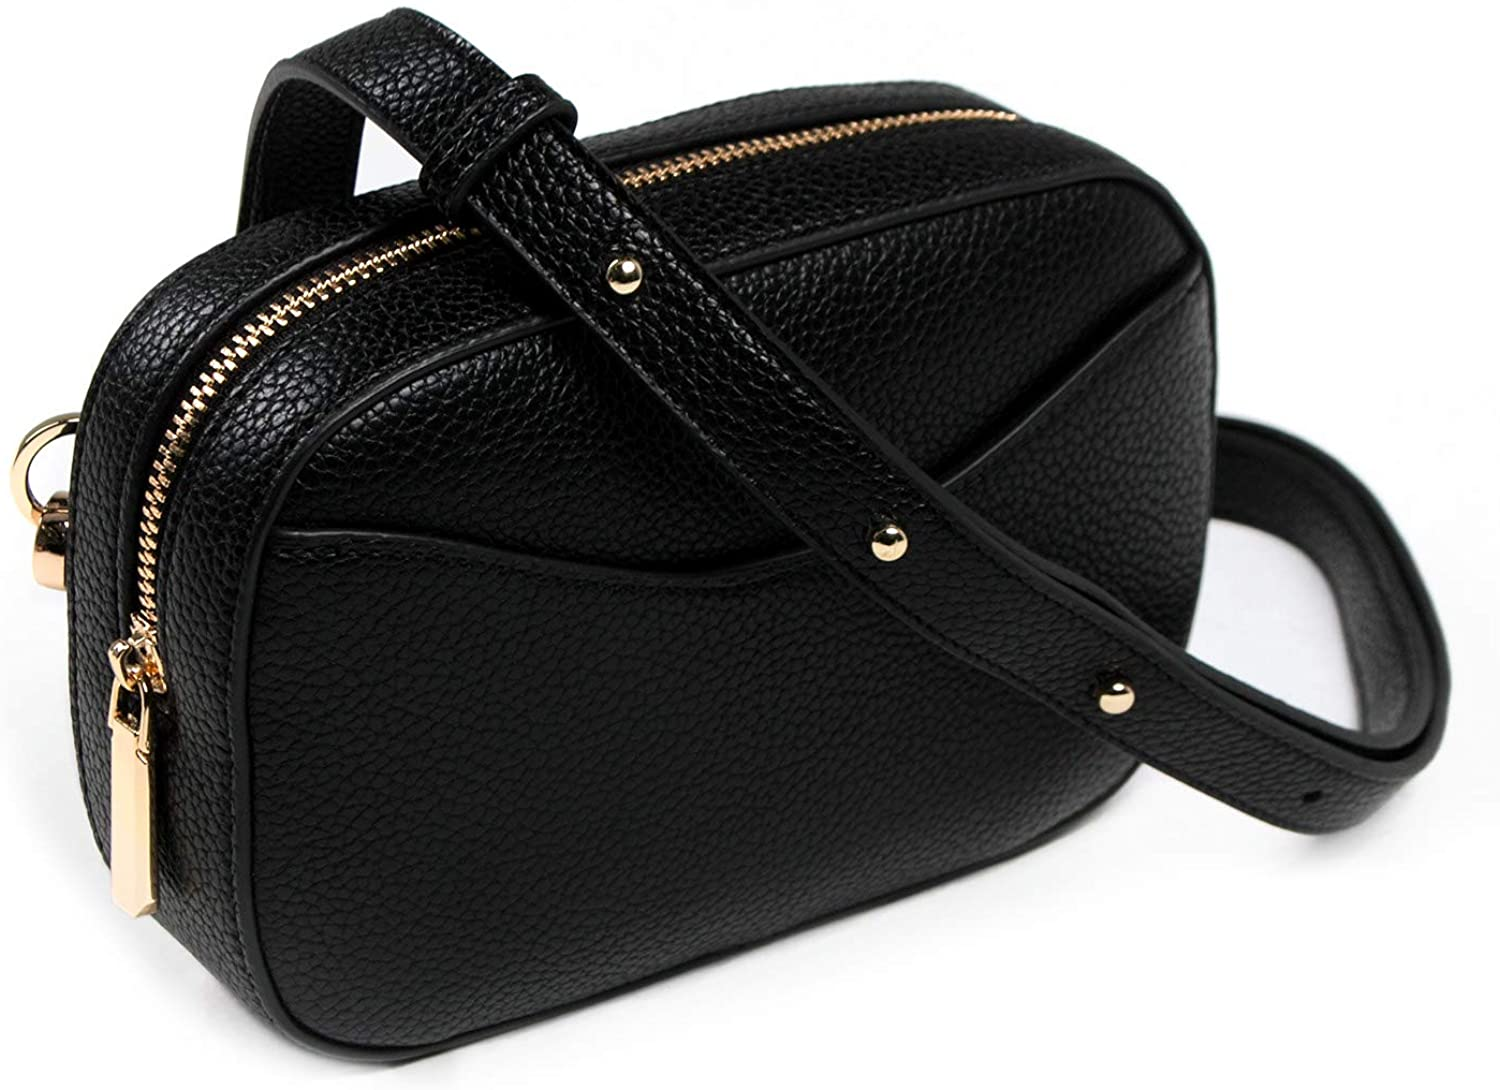 MODESSE Premium Leather Belt Bag for Women | Trendy, Stylish Fanny Pack | Fits U.S. Sizes 2-16